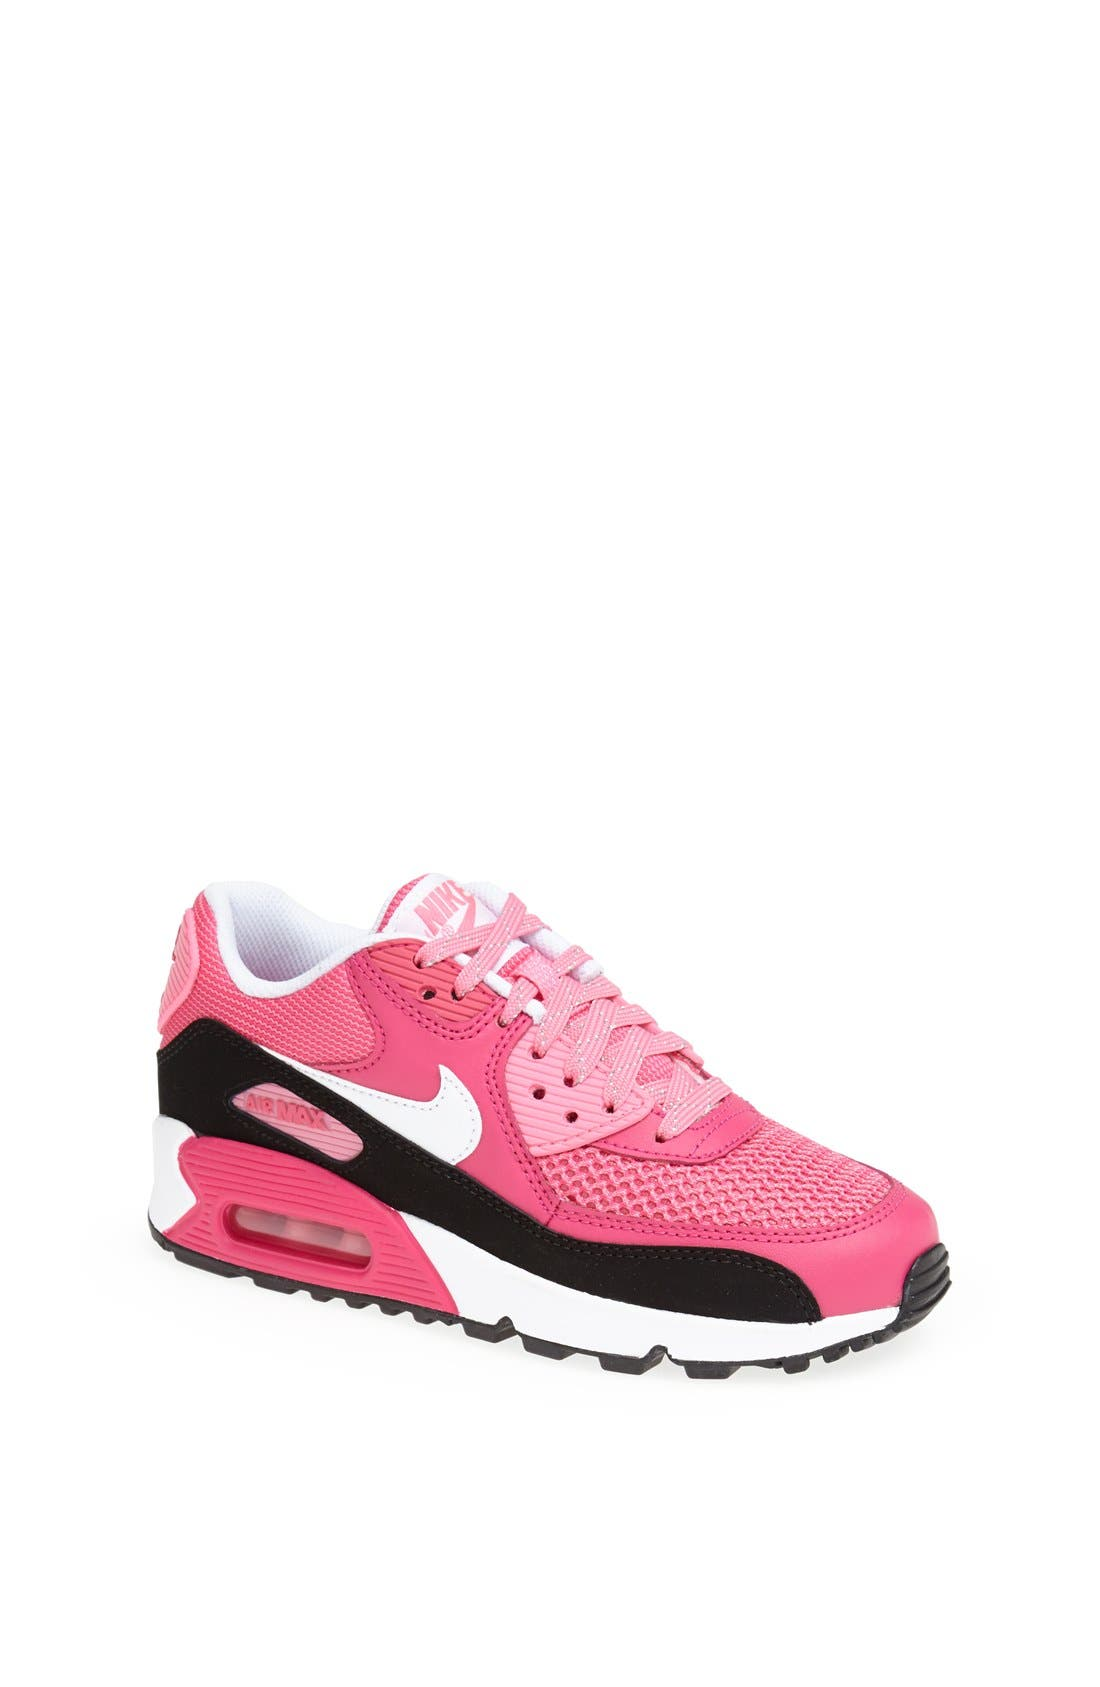 Alternate Image 1 Selected - Nike 'Air Max 90 LE' Running Shoe (Big Kid)